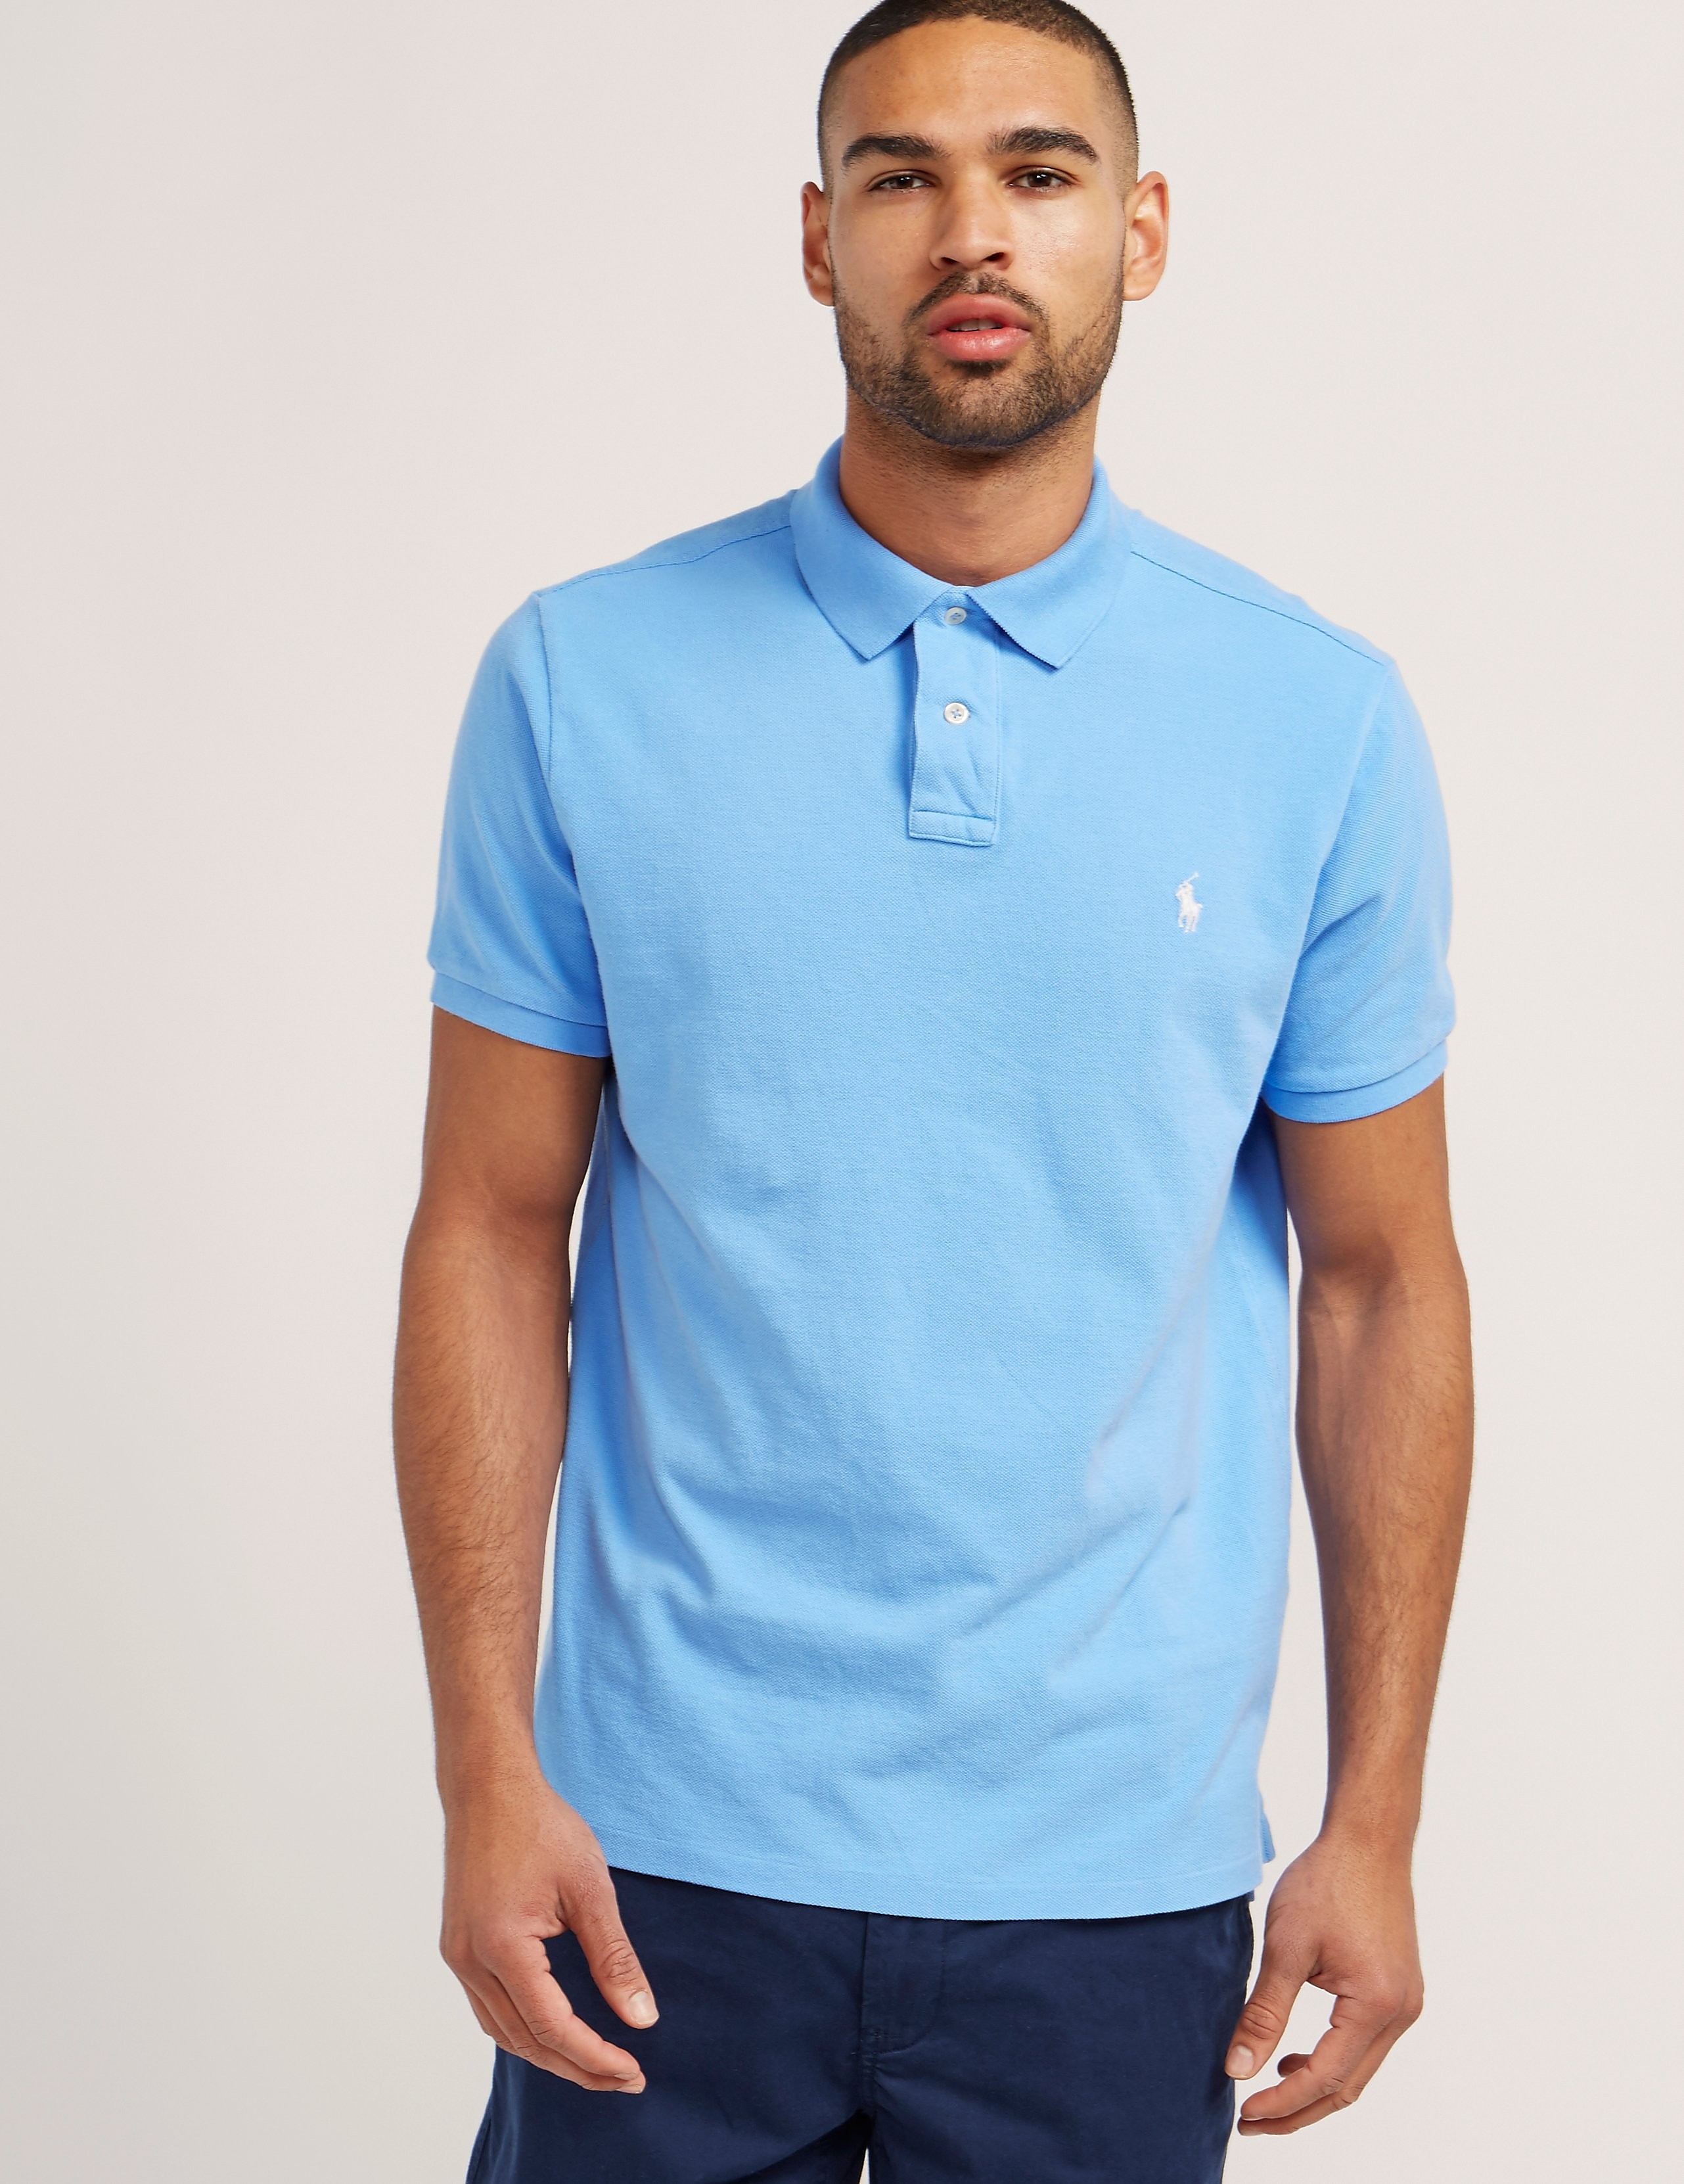 Polo Ralph Lauren Weathered Mesh Short Sleeve Polo Shirt